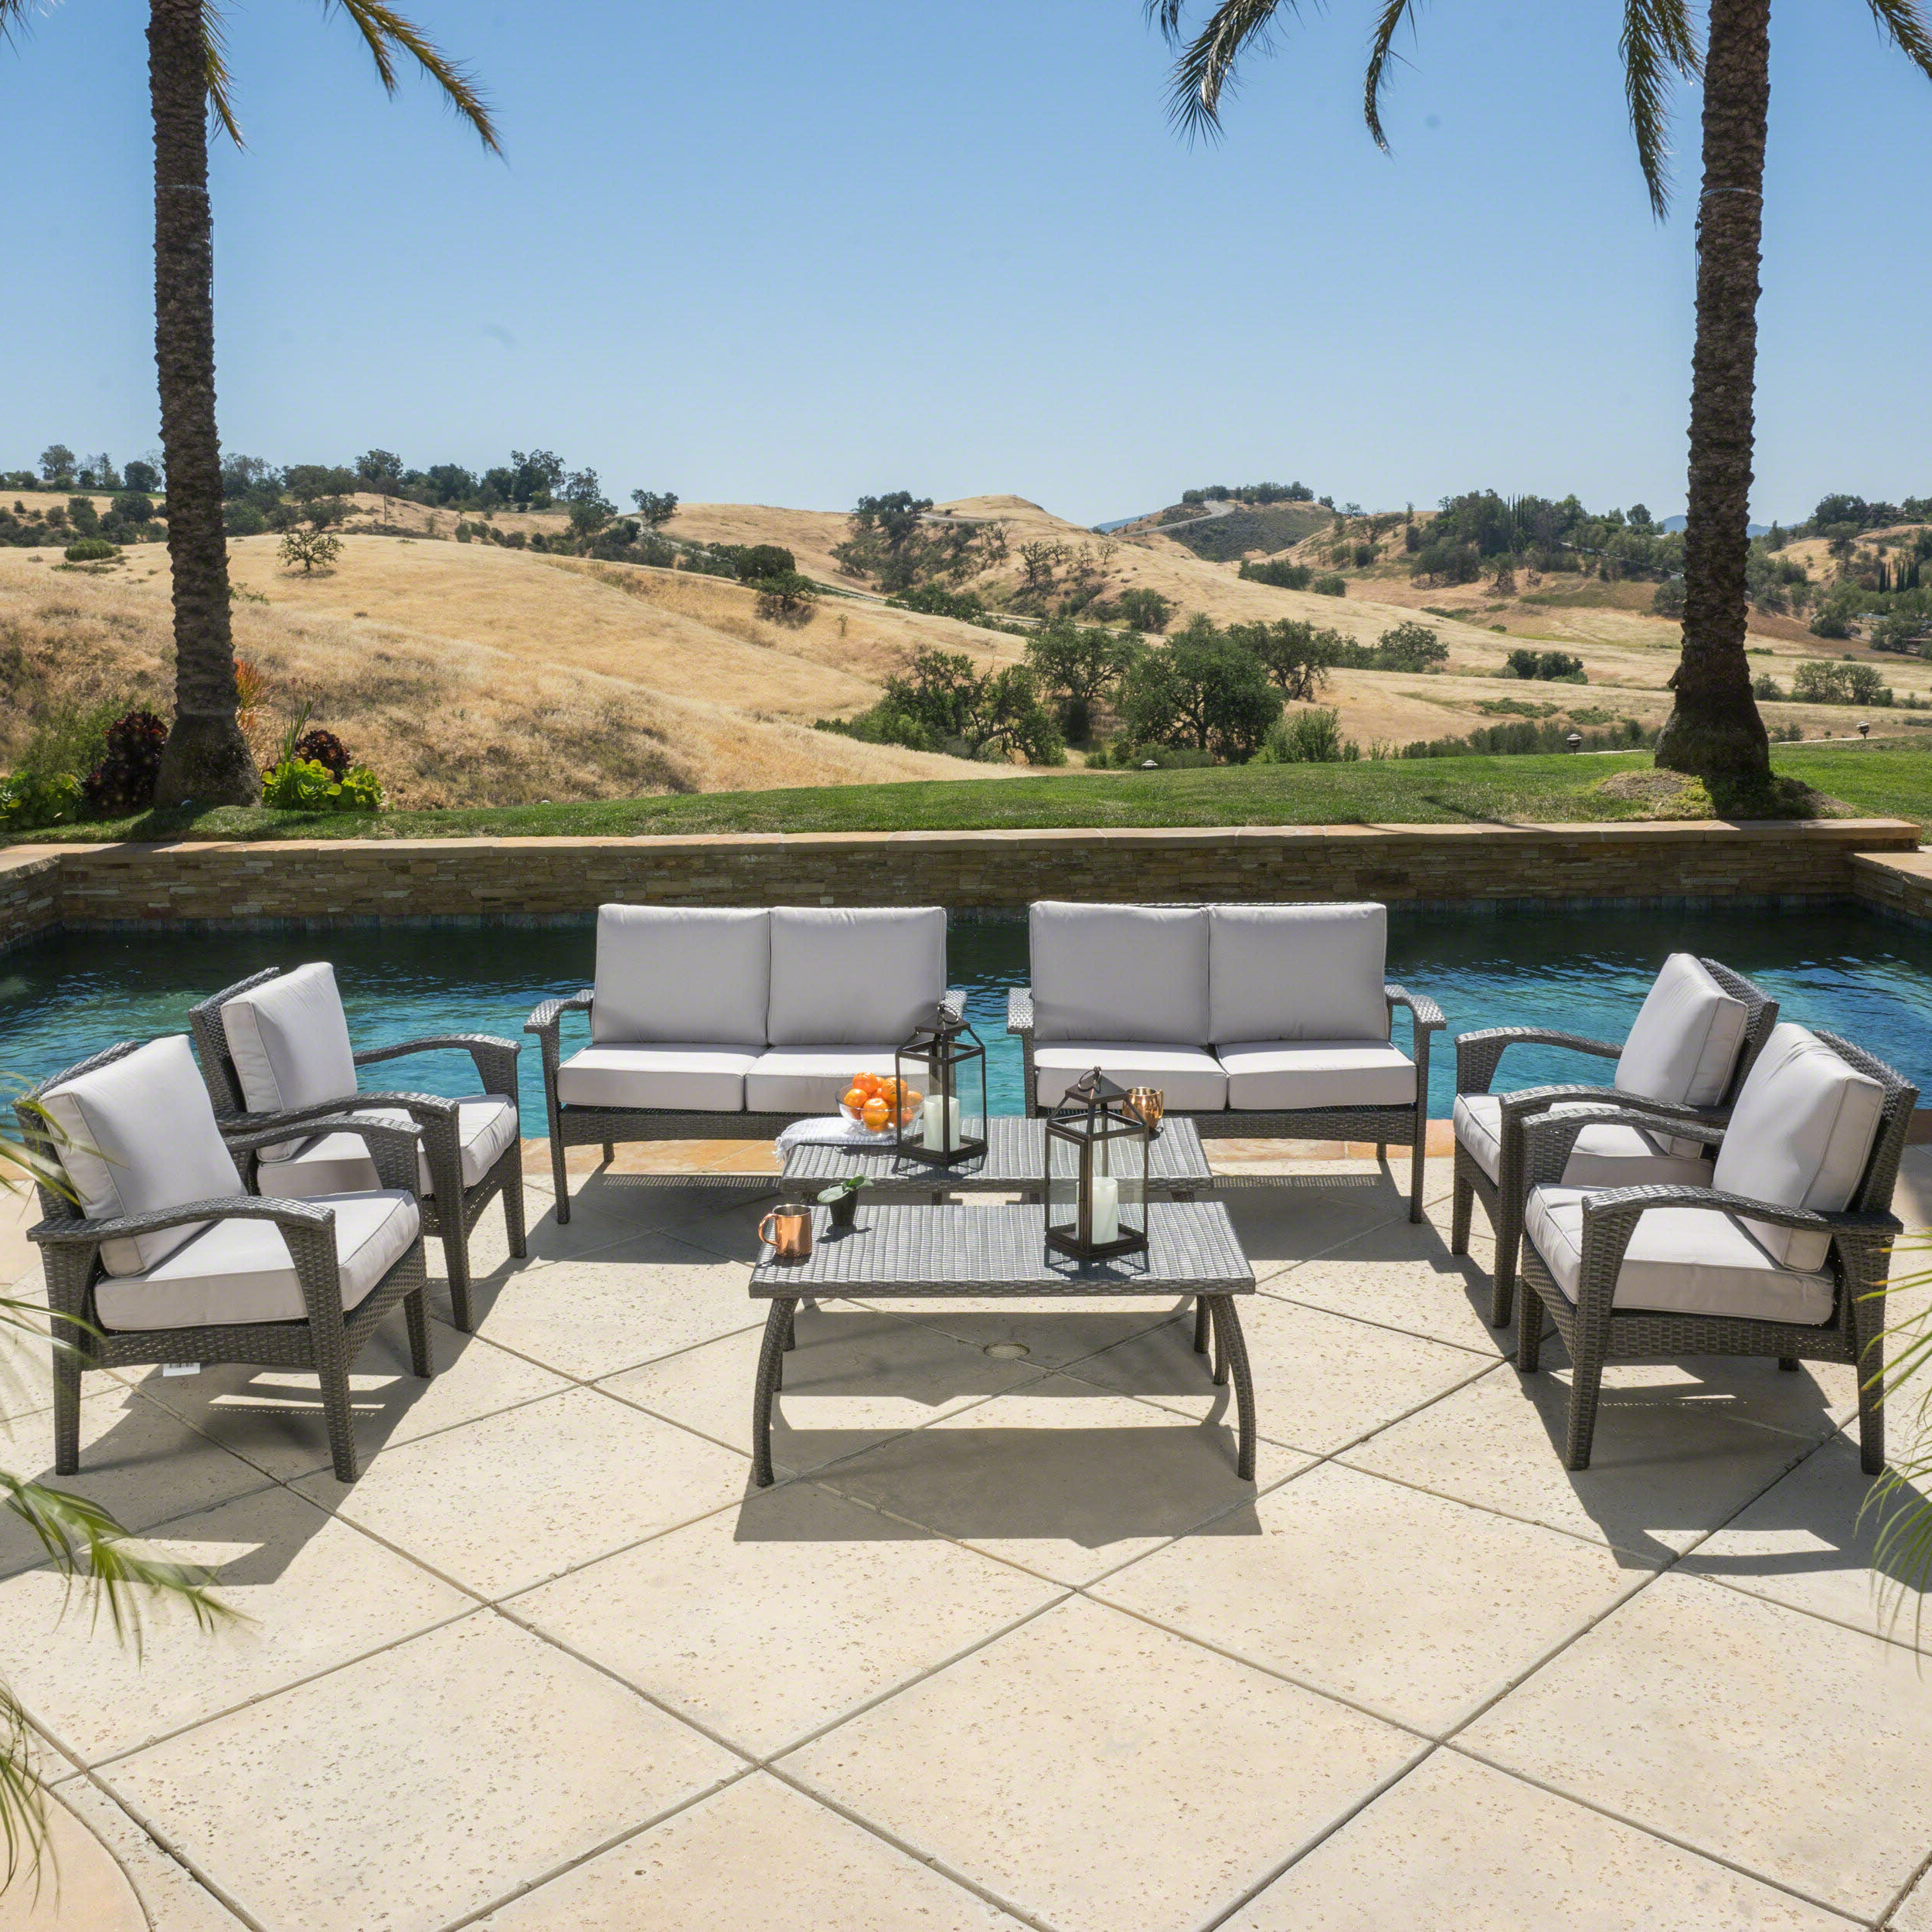 Latest Hagler Outdoor Loveseats With Cushions For Hagler 8 Piece Sofa Seating Group With Cushions (View 6 of 25)